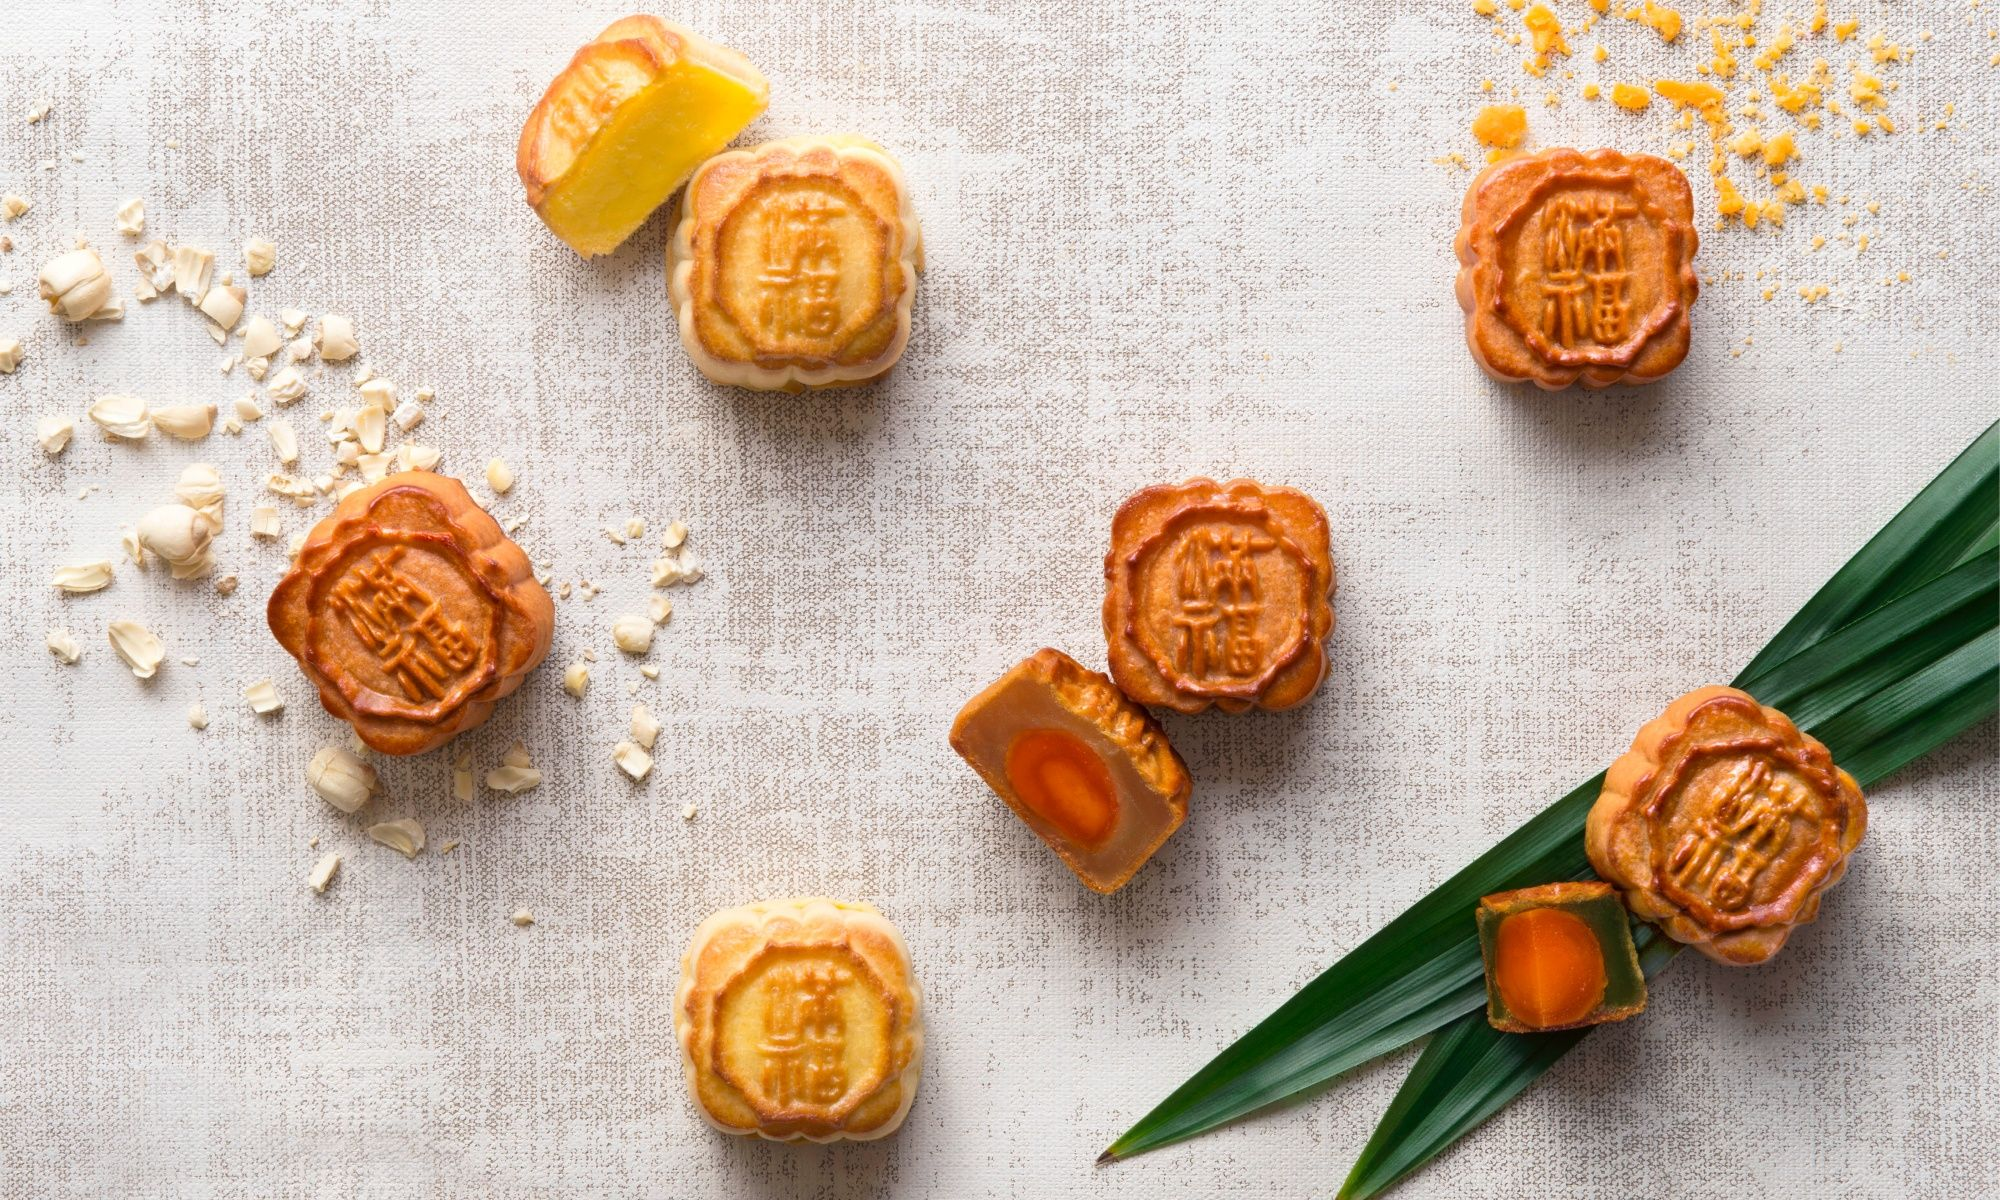 Indulge In Mid-Autumn Festival With Mooncakes From Dynasty